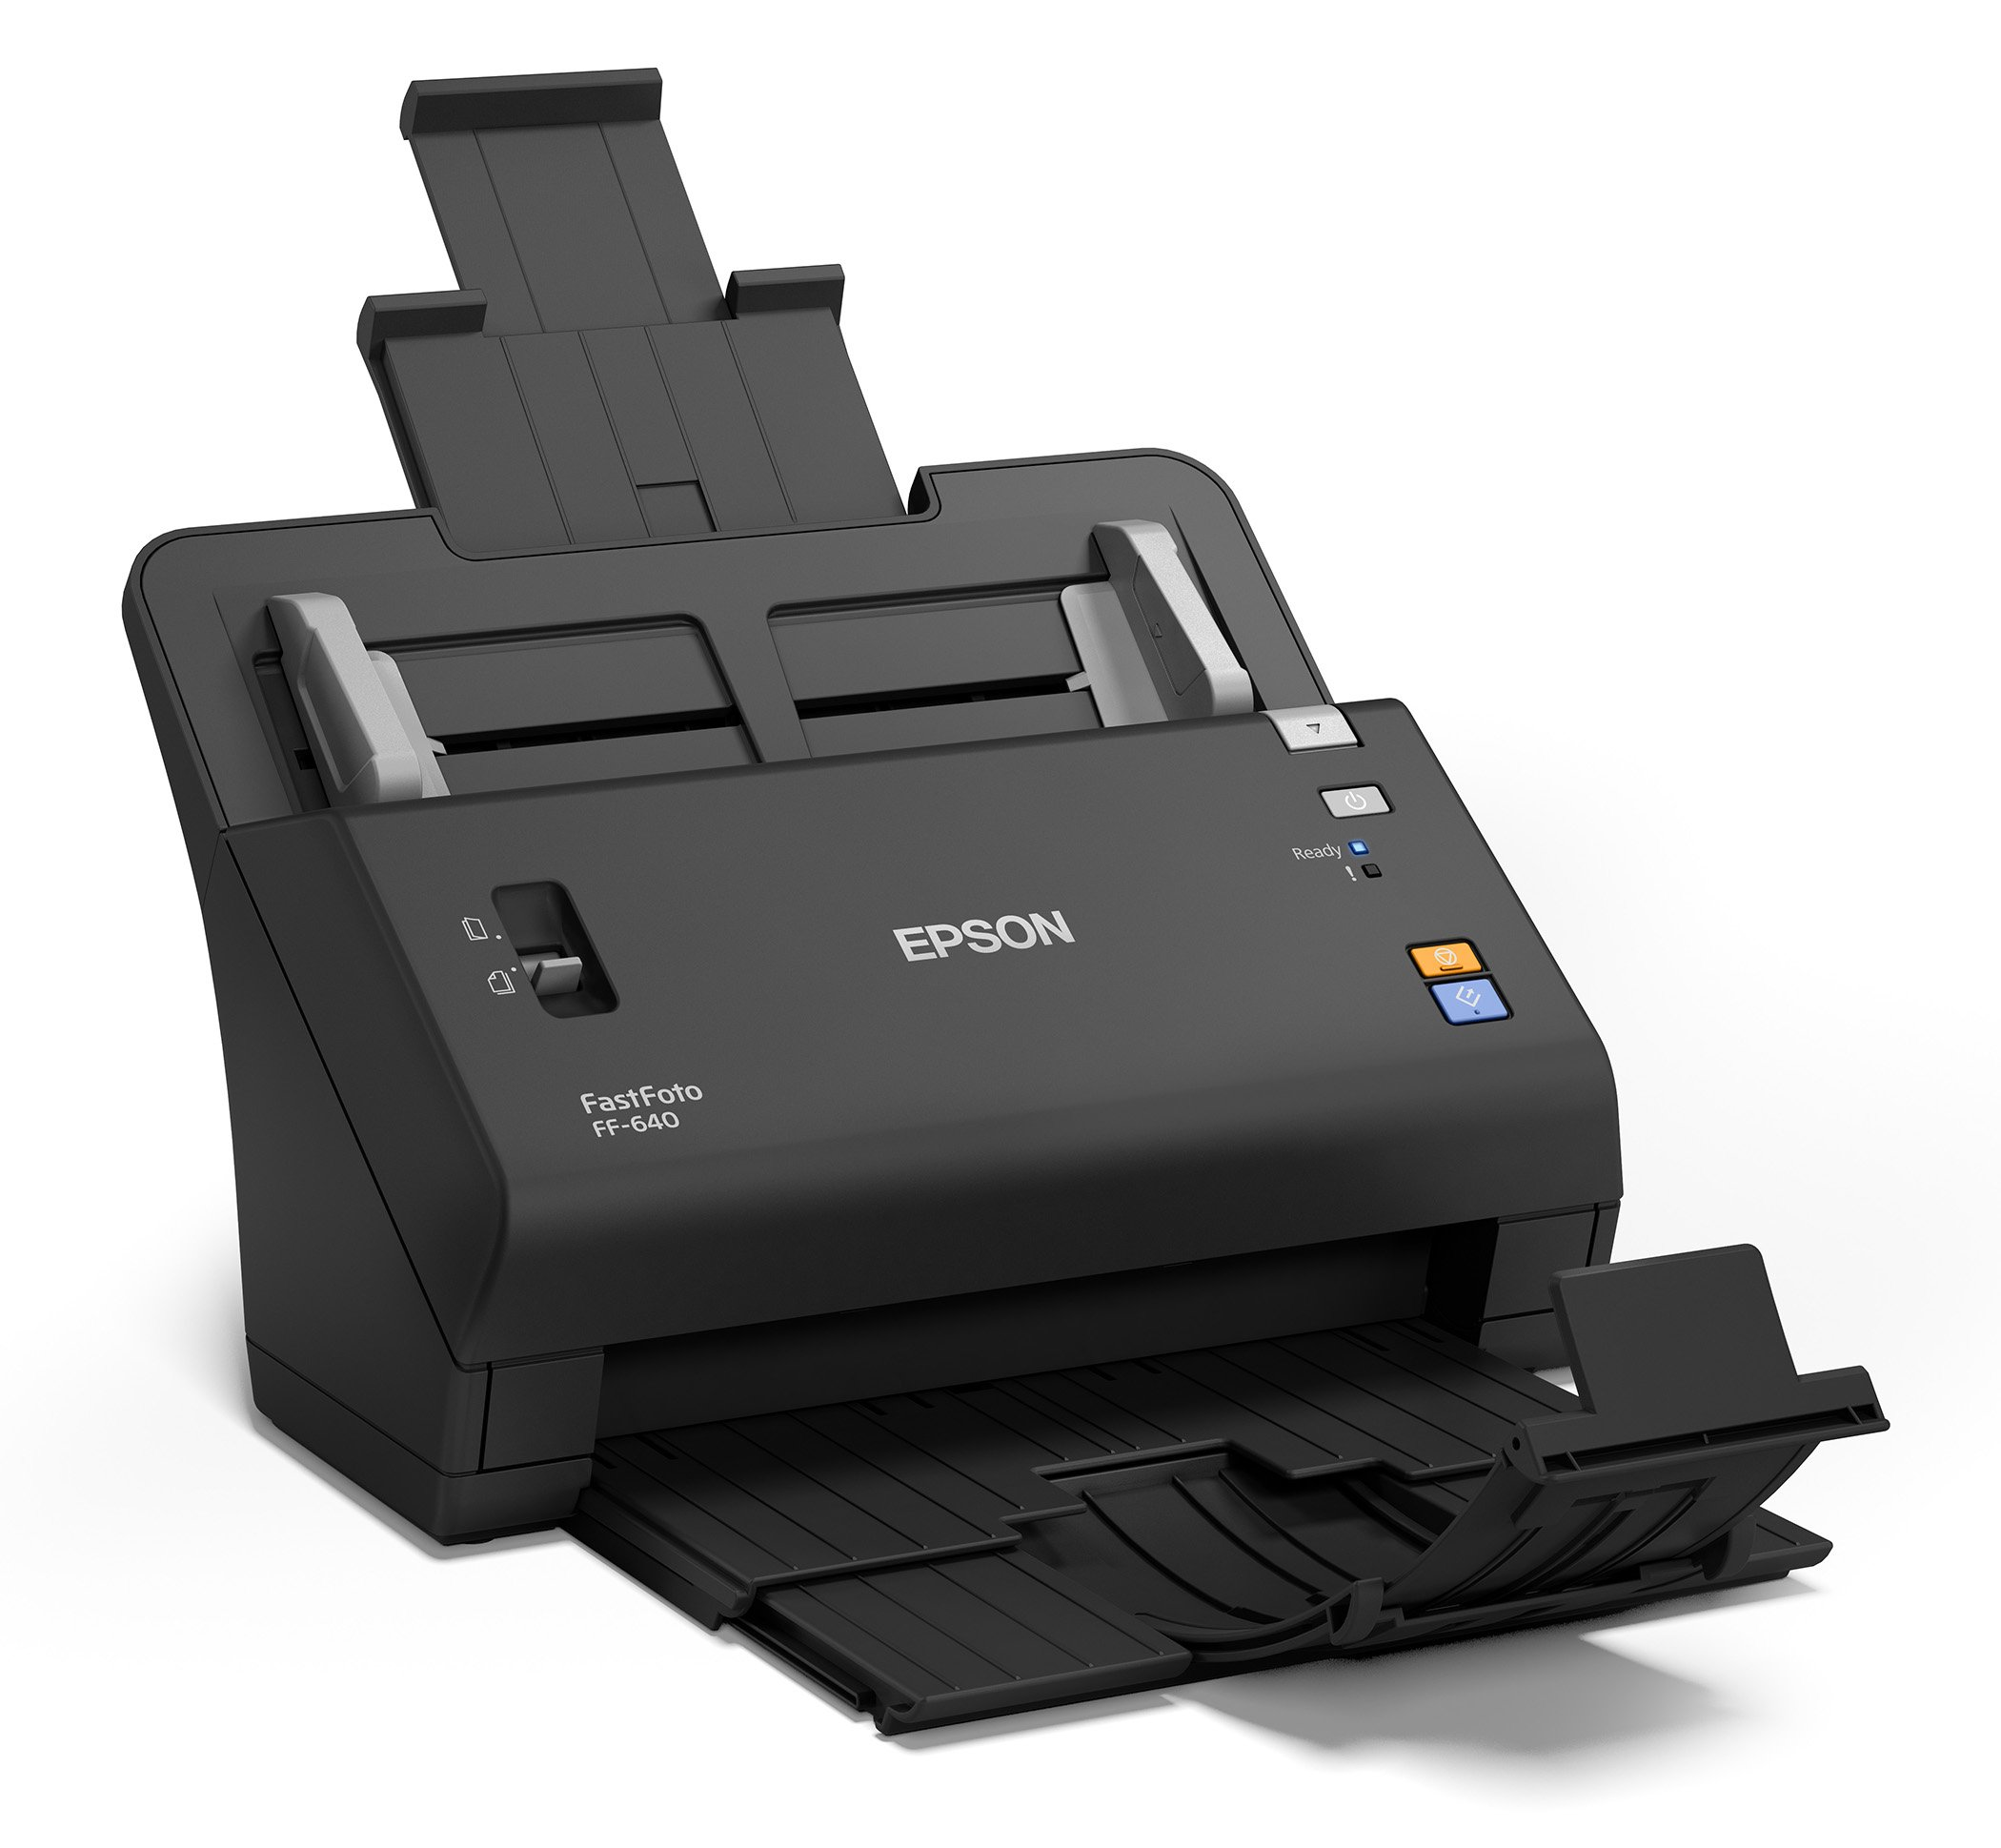 Epson FastFoto FF-640 High-Speed Photo Scanning System with Auto Photo Feeder by Epson (Image #4)